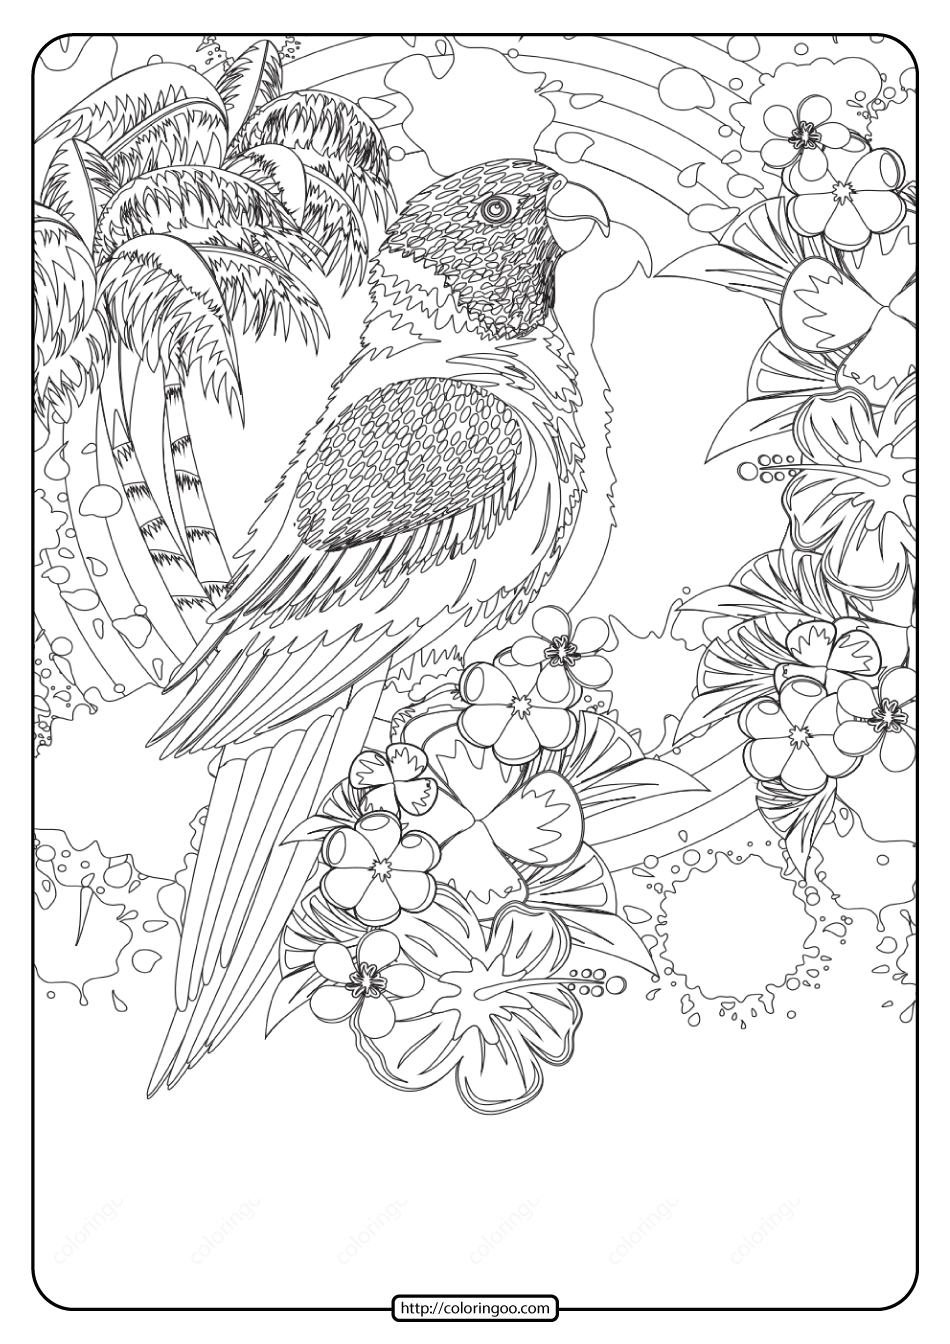 Free Printable Tropical Bird Pdf Coloring Page